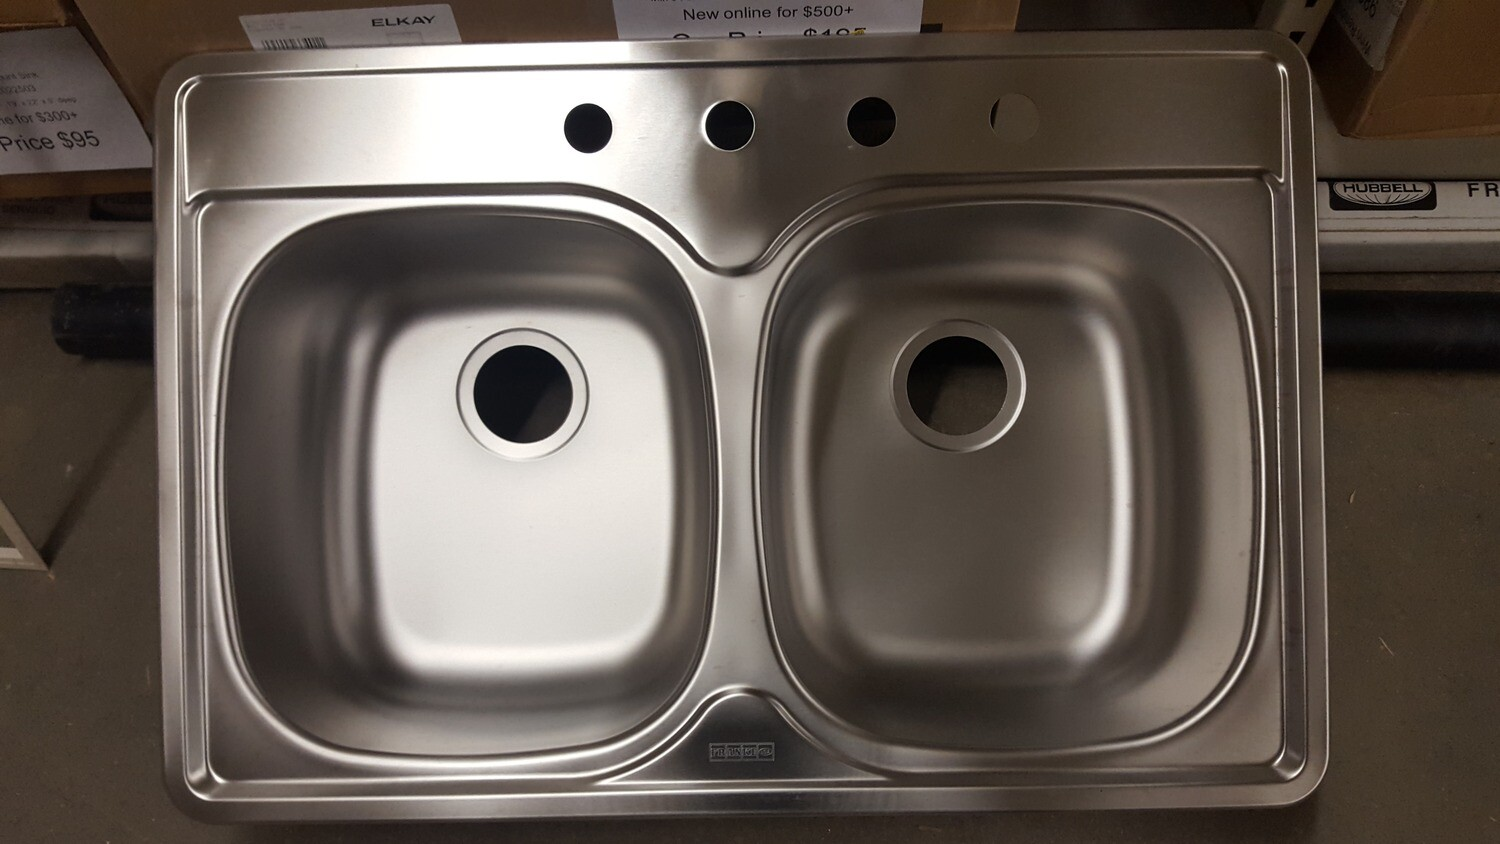 Kitchen Sink, double bowl, new